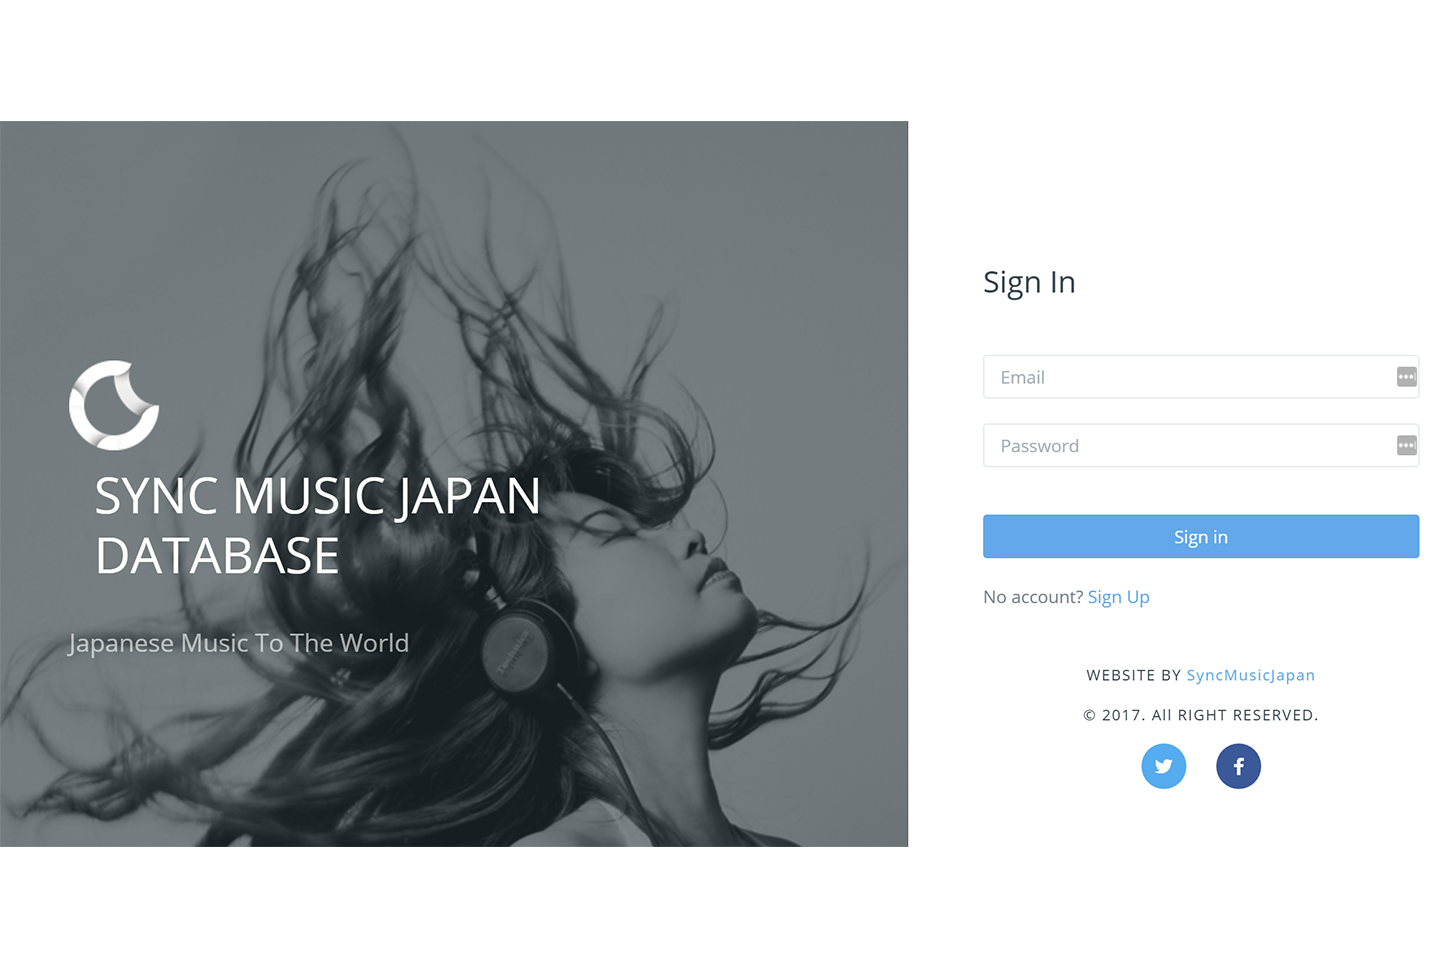 SYNC MUSIC JAPAN DATA BASE